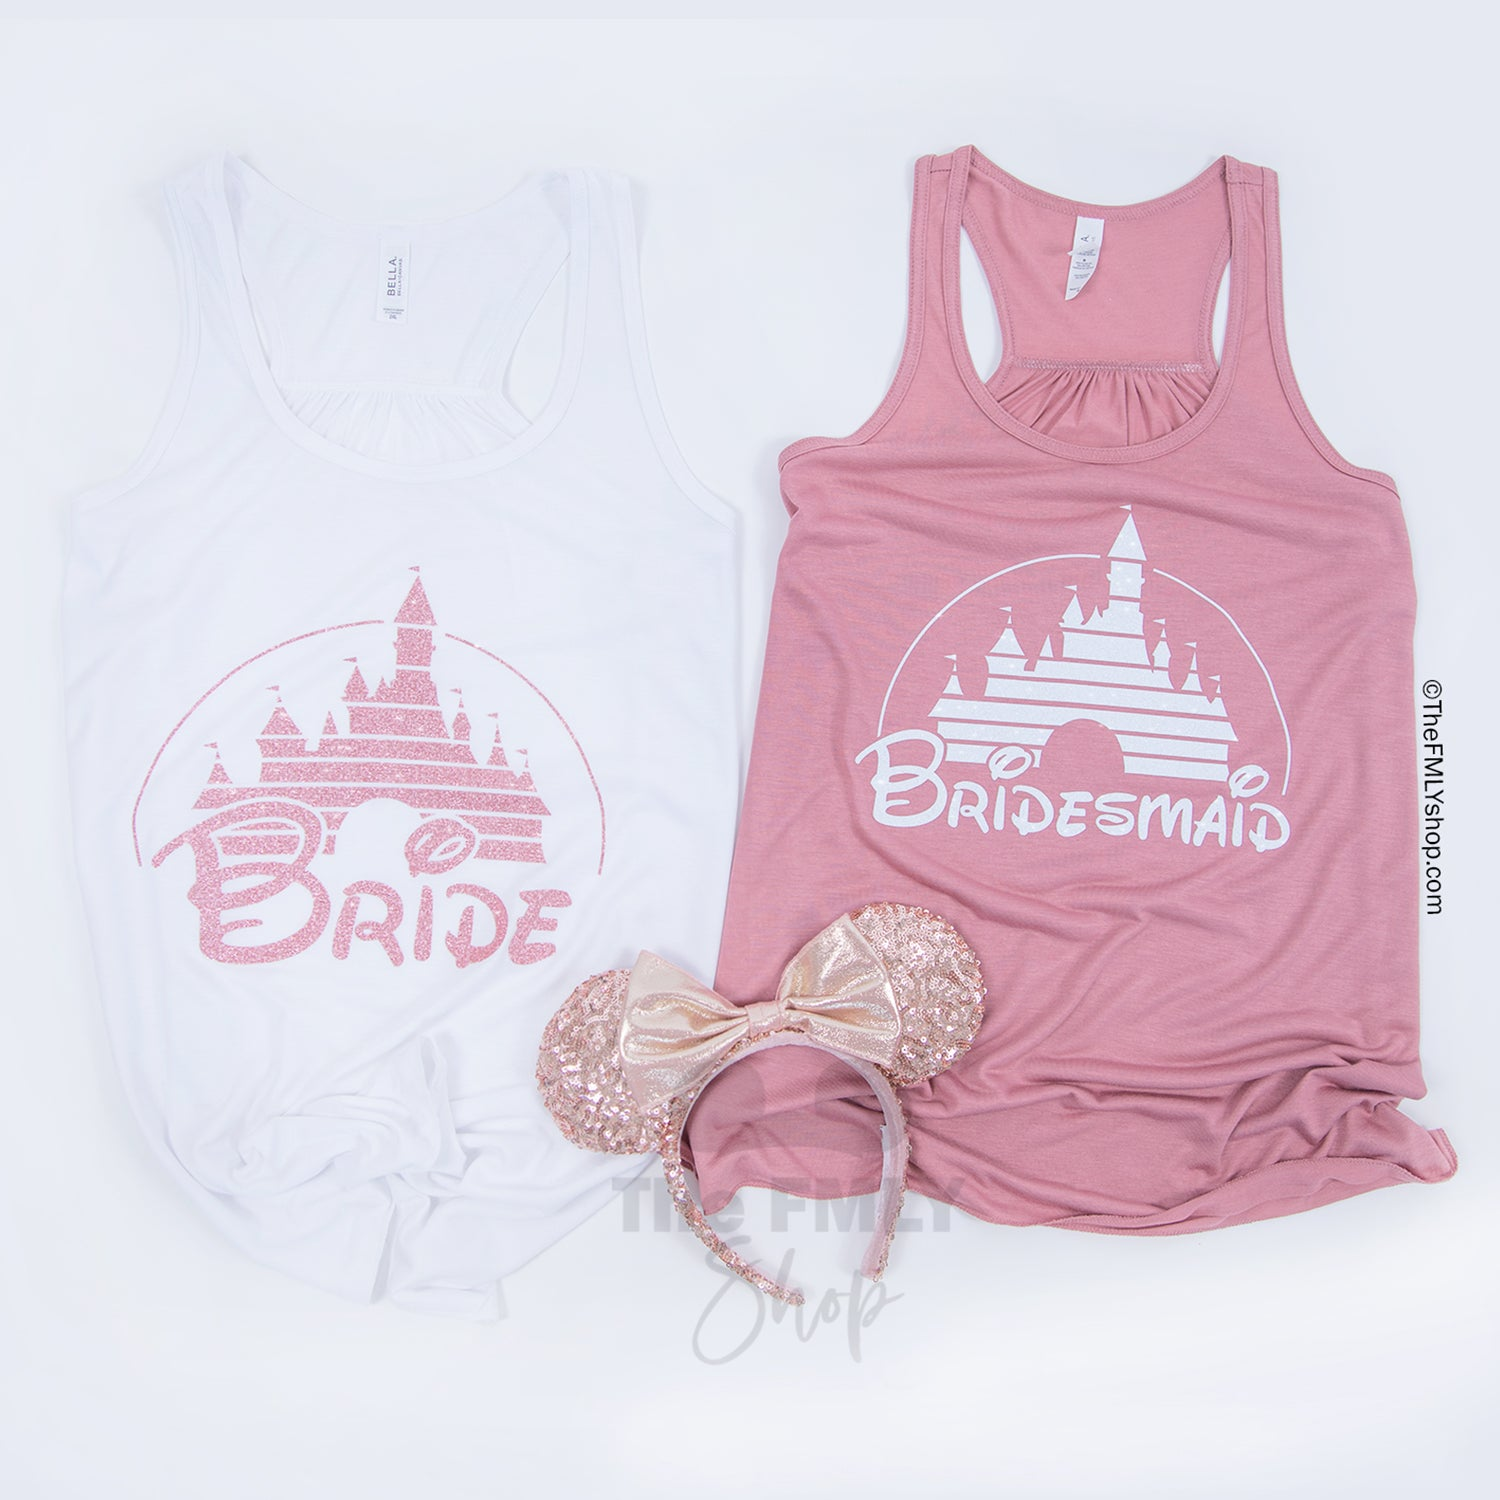 Disney Bachelorette Party Tanks / Disney Castle Flowy Tanks (8 Design Options) - Disney MatchingShirts, Disney Family Shirts, Disney Couple Shirts from The FMLY shop